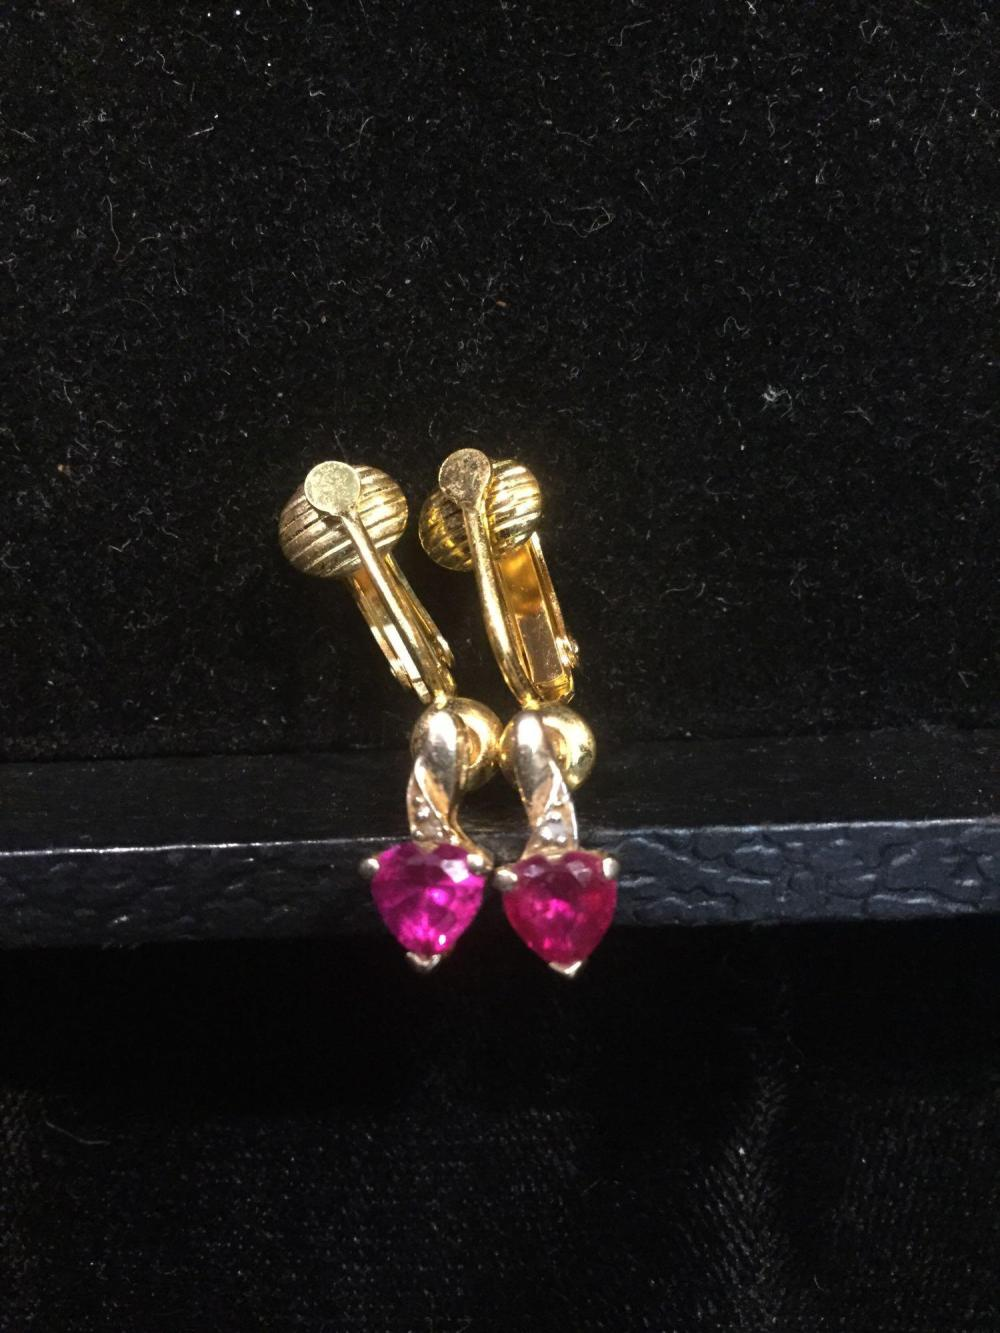 Lot 174: Vintage 10k gold heart shaped ruby necklace & earrings - no chain 5 g total weight